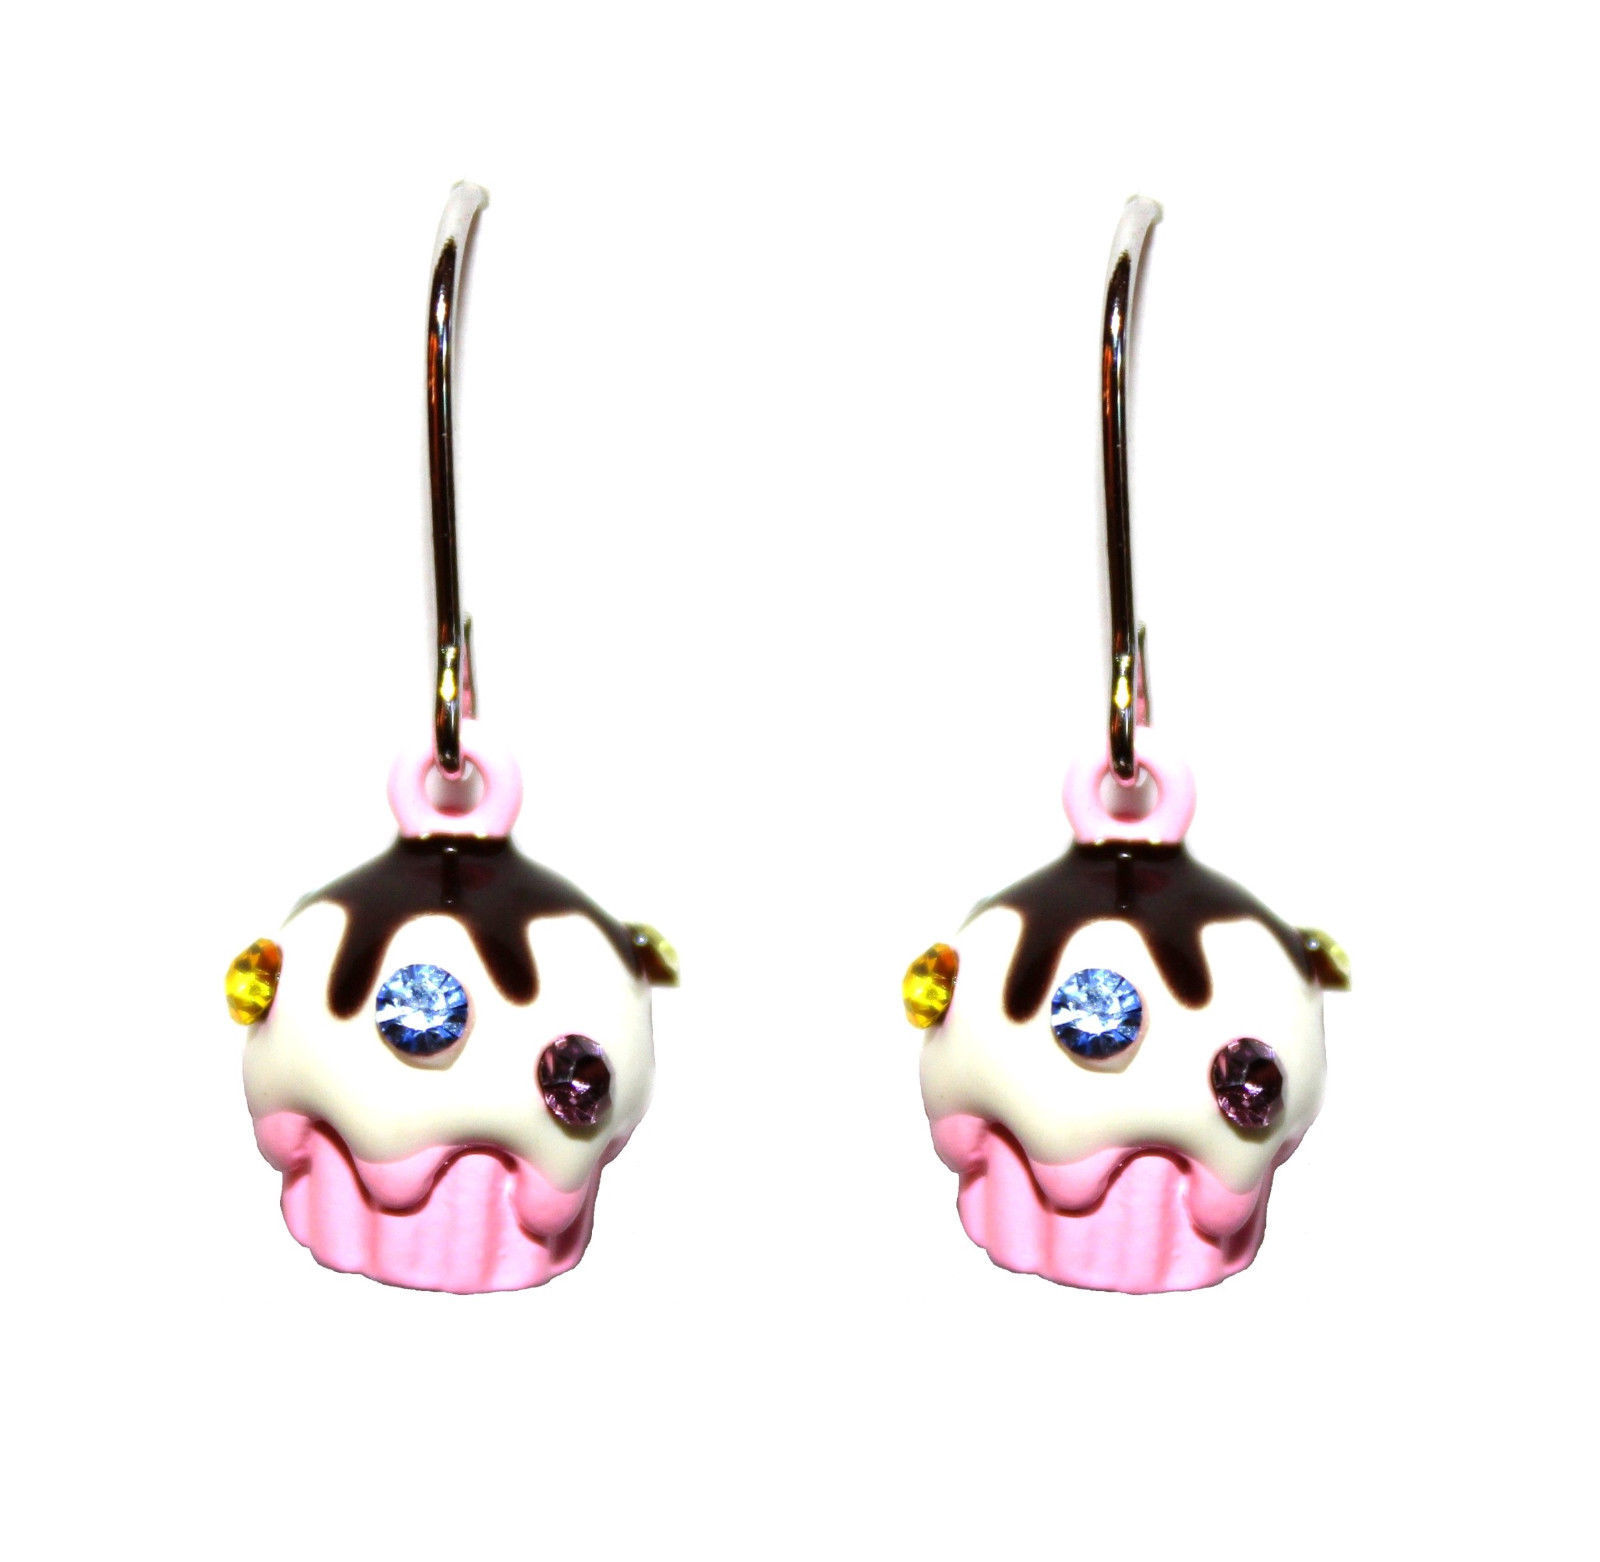 Primary image for Chocolate Girls Cute Swarovski Crystal Sprinkle Topping Pink Cup Cake Earrings